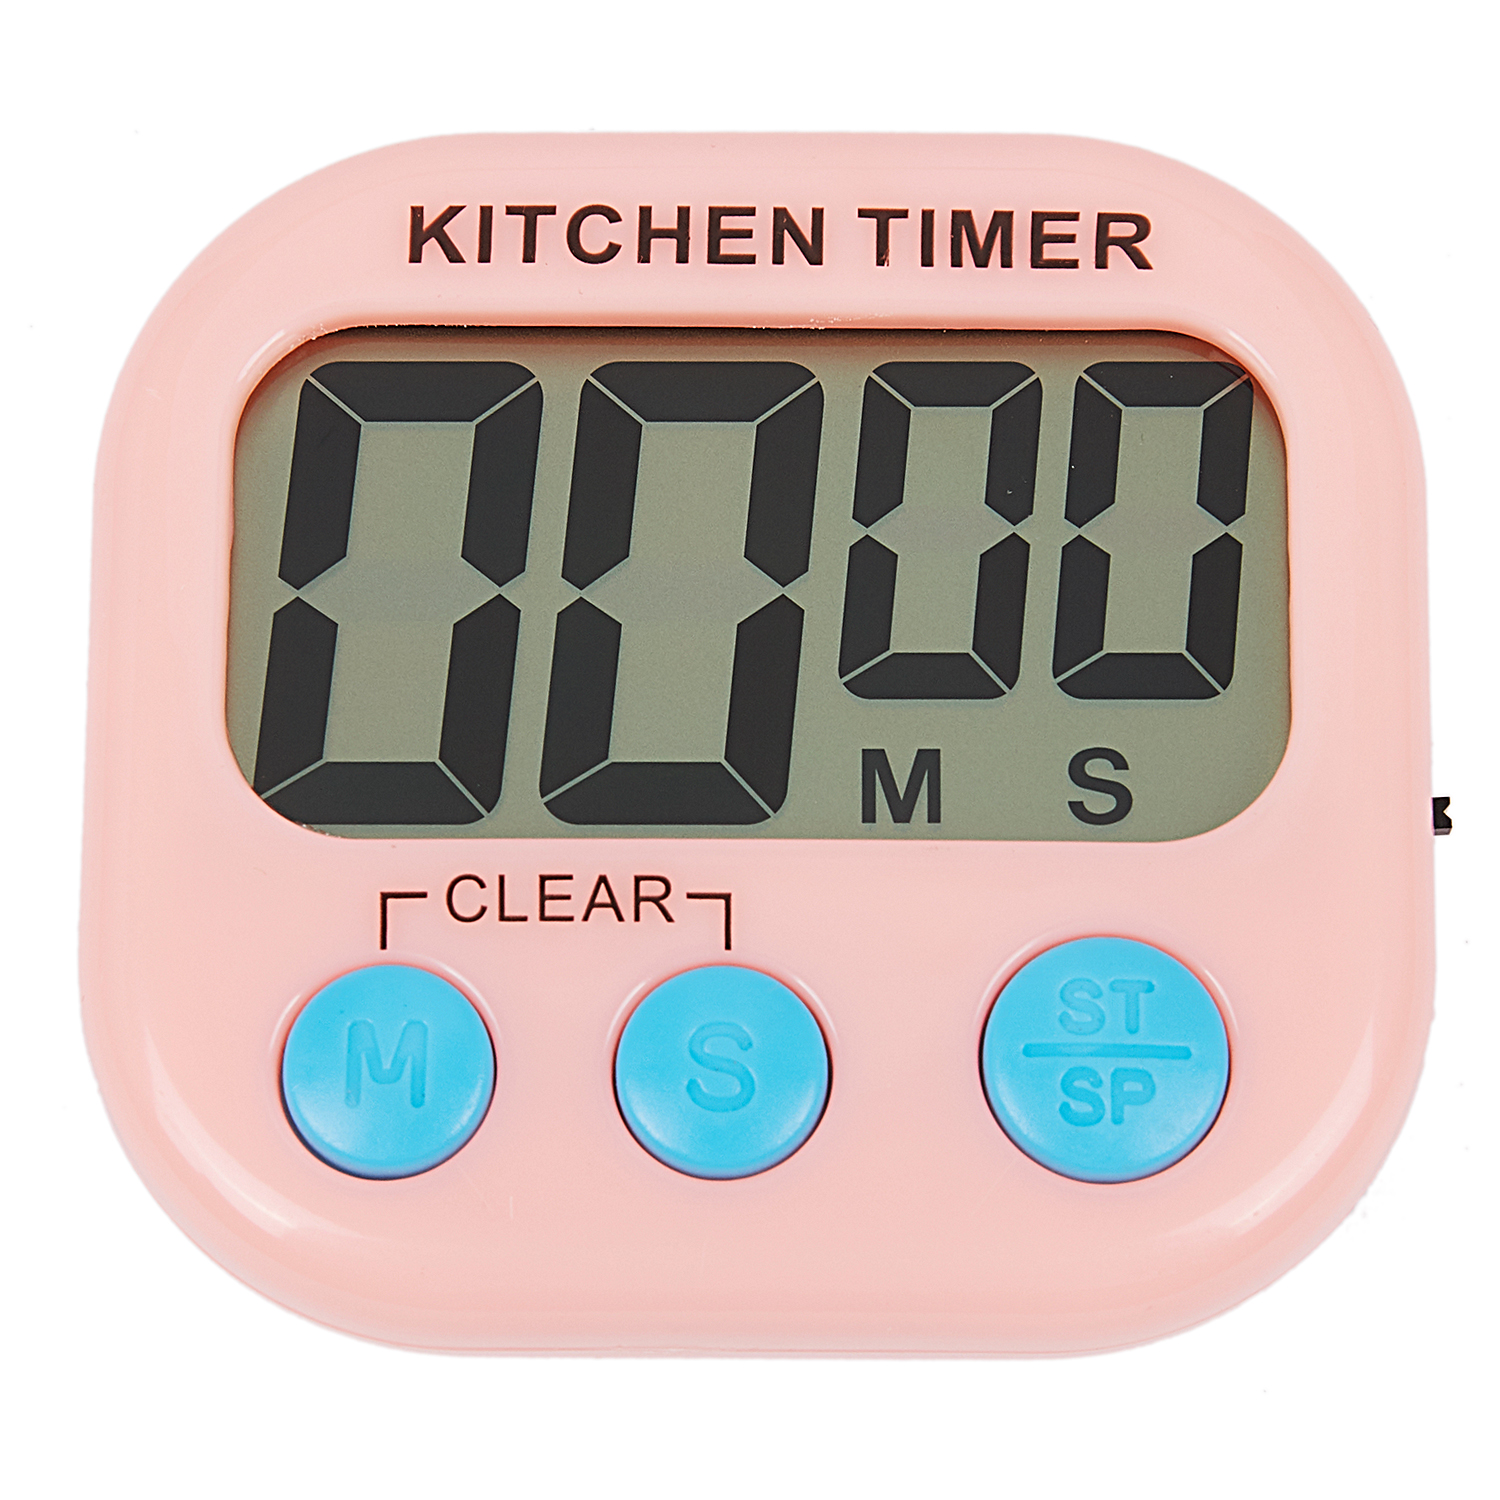 Digital Countdown Timer Large LCD Screen Display Alarm Clock Kitchen Cook tool